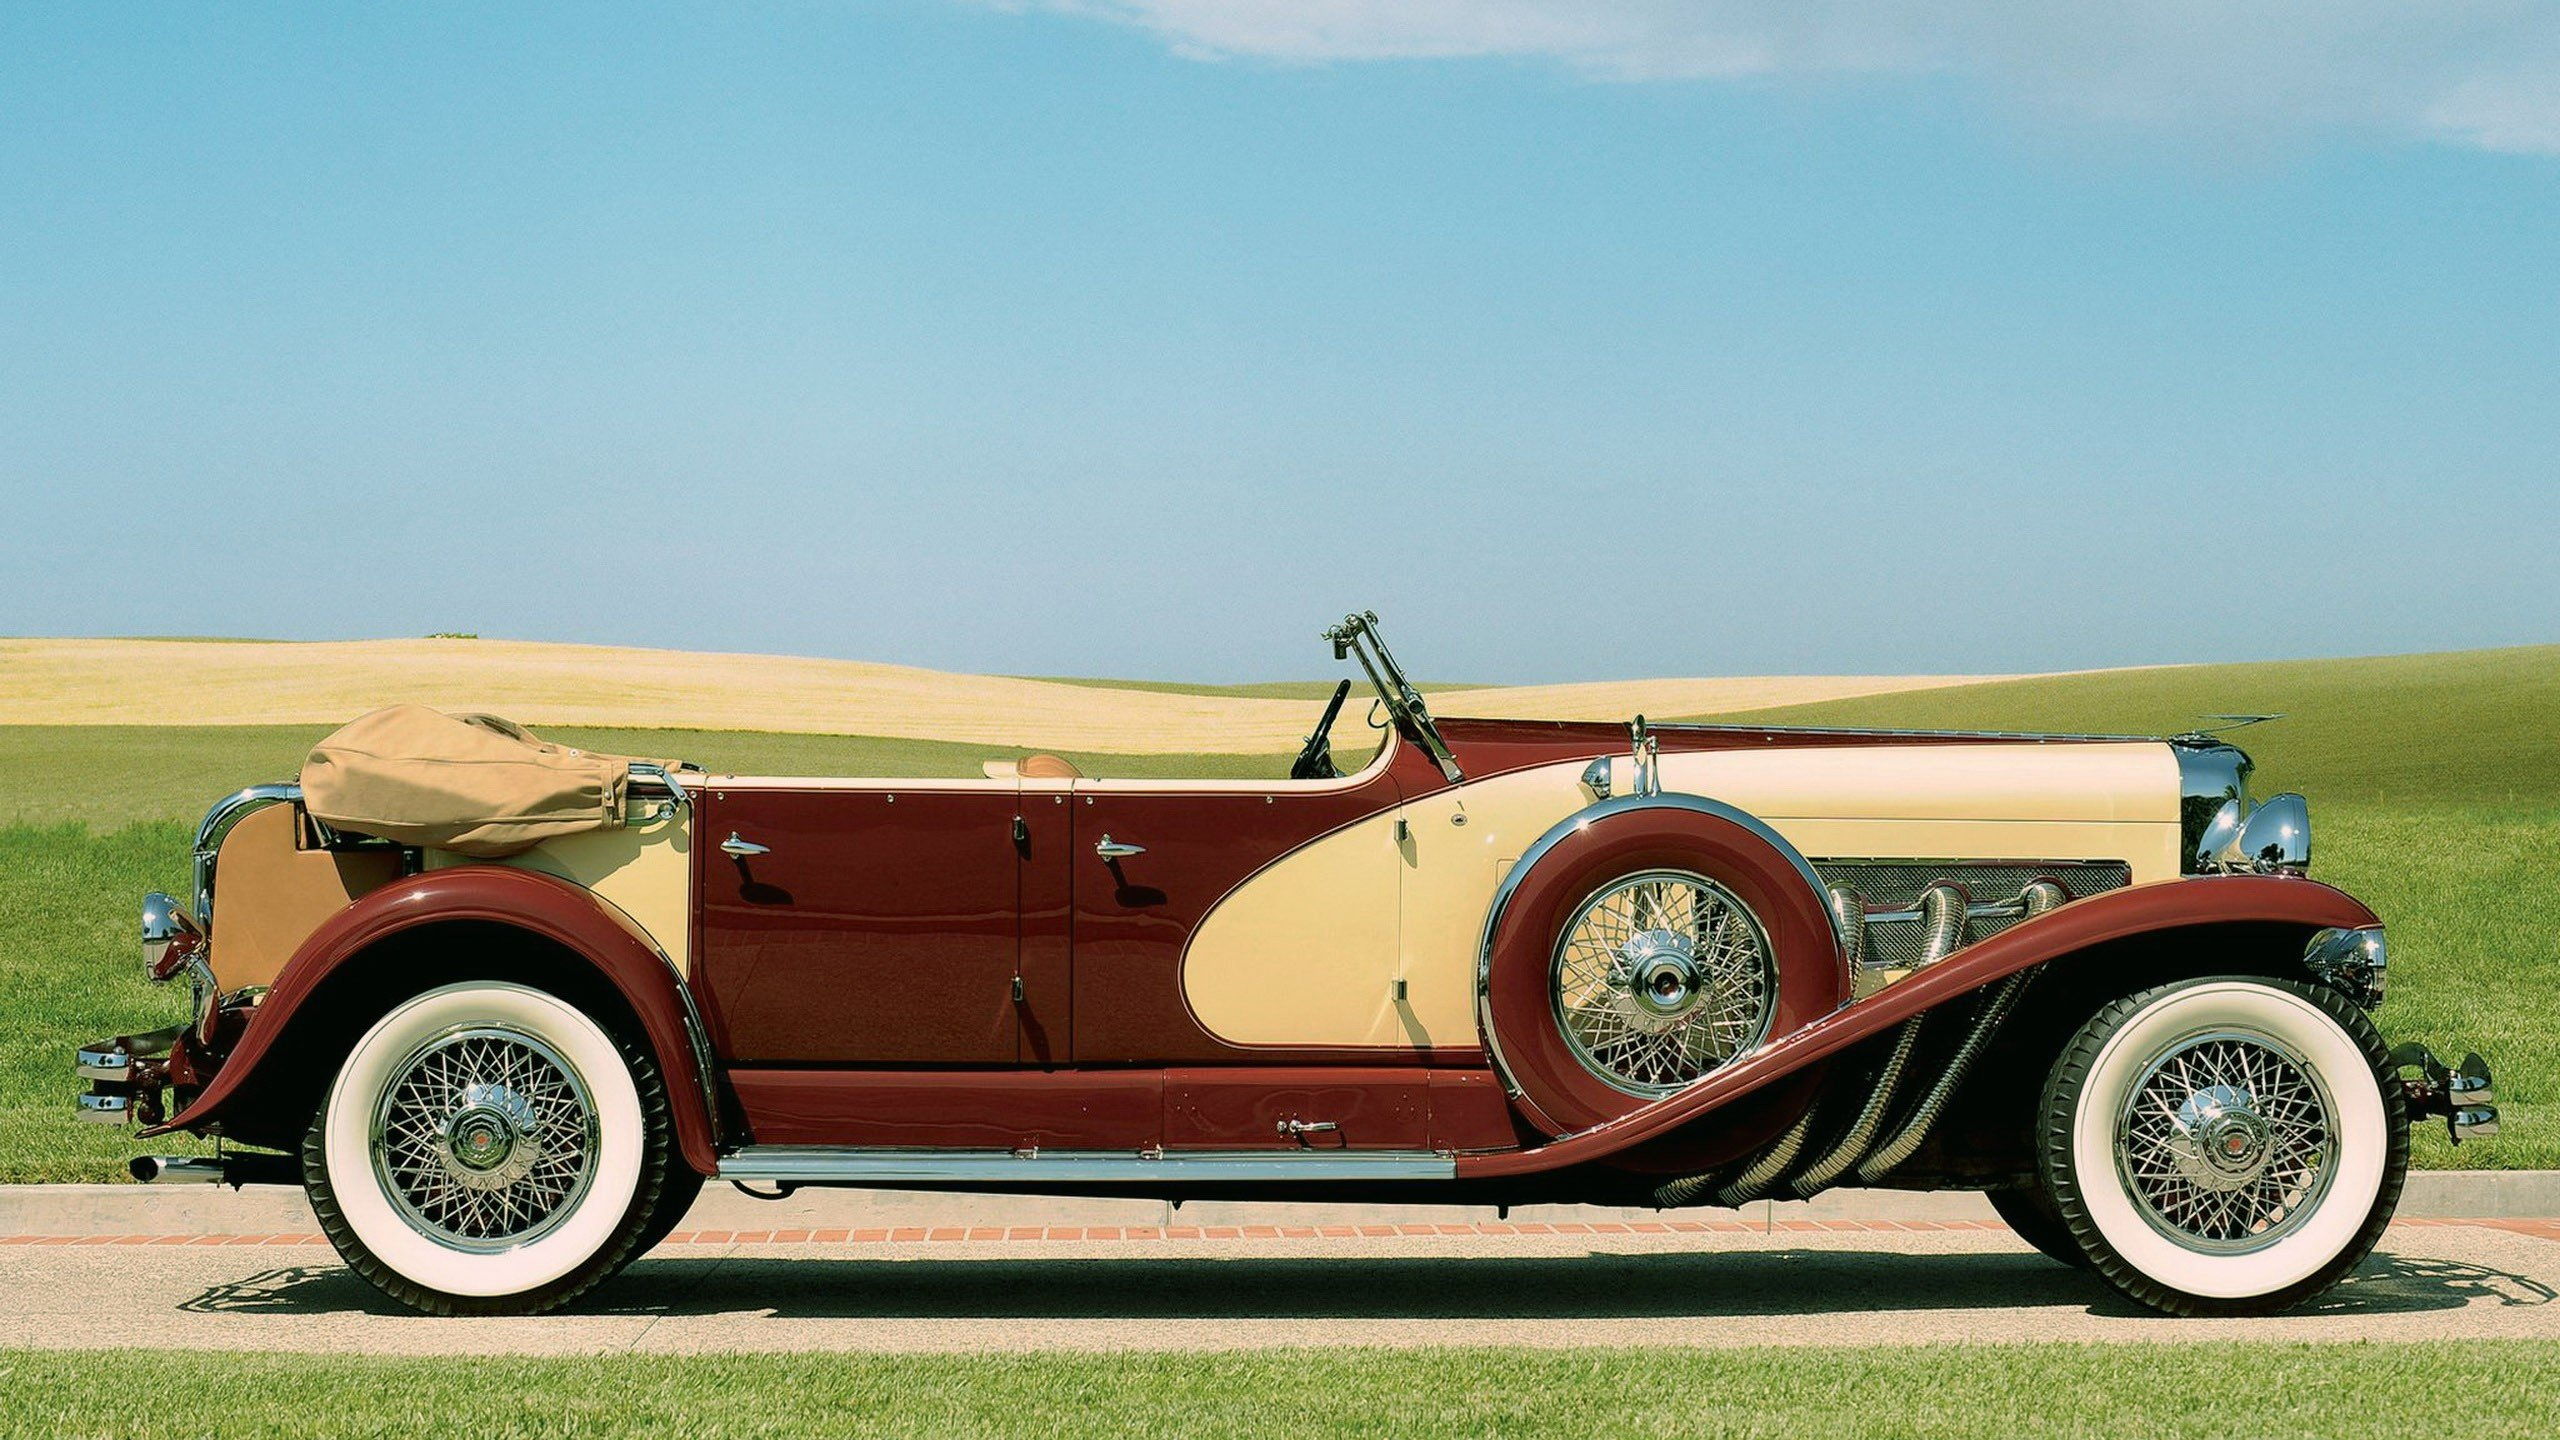 duesenberg vintage car wallpapers - photo #37